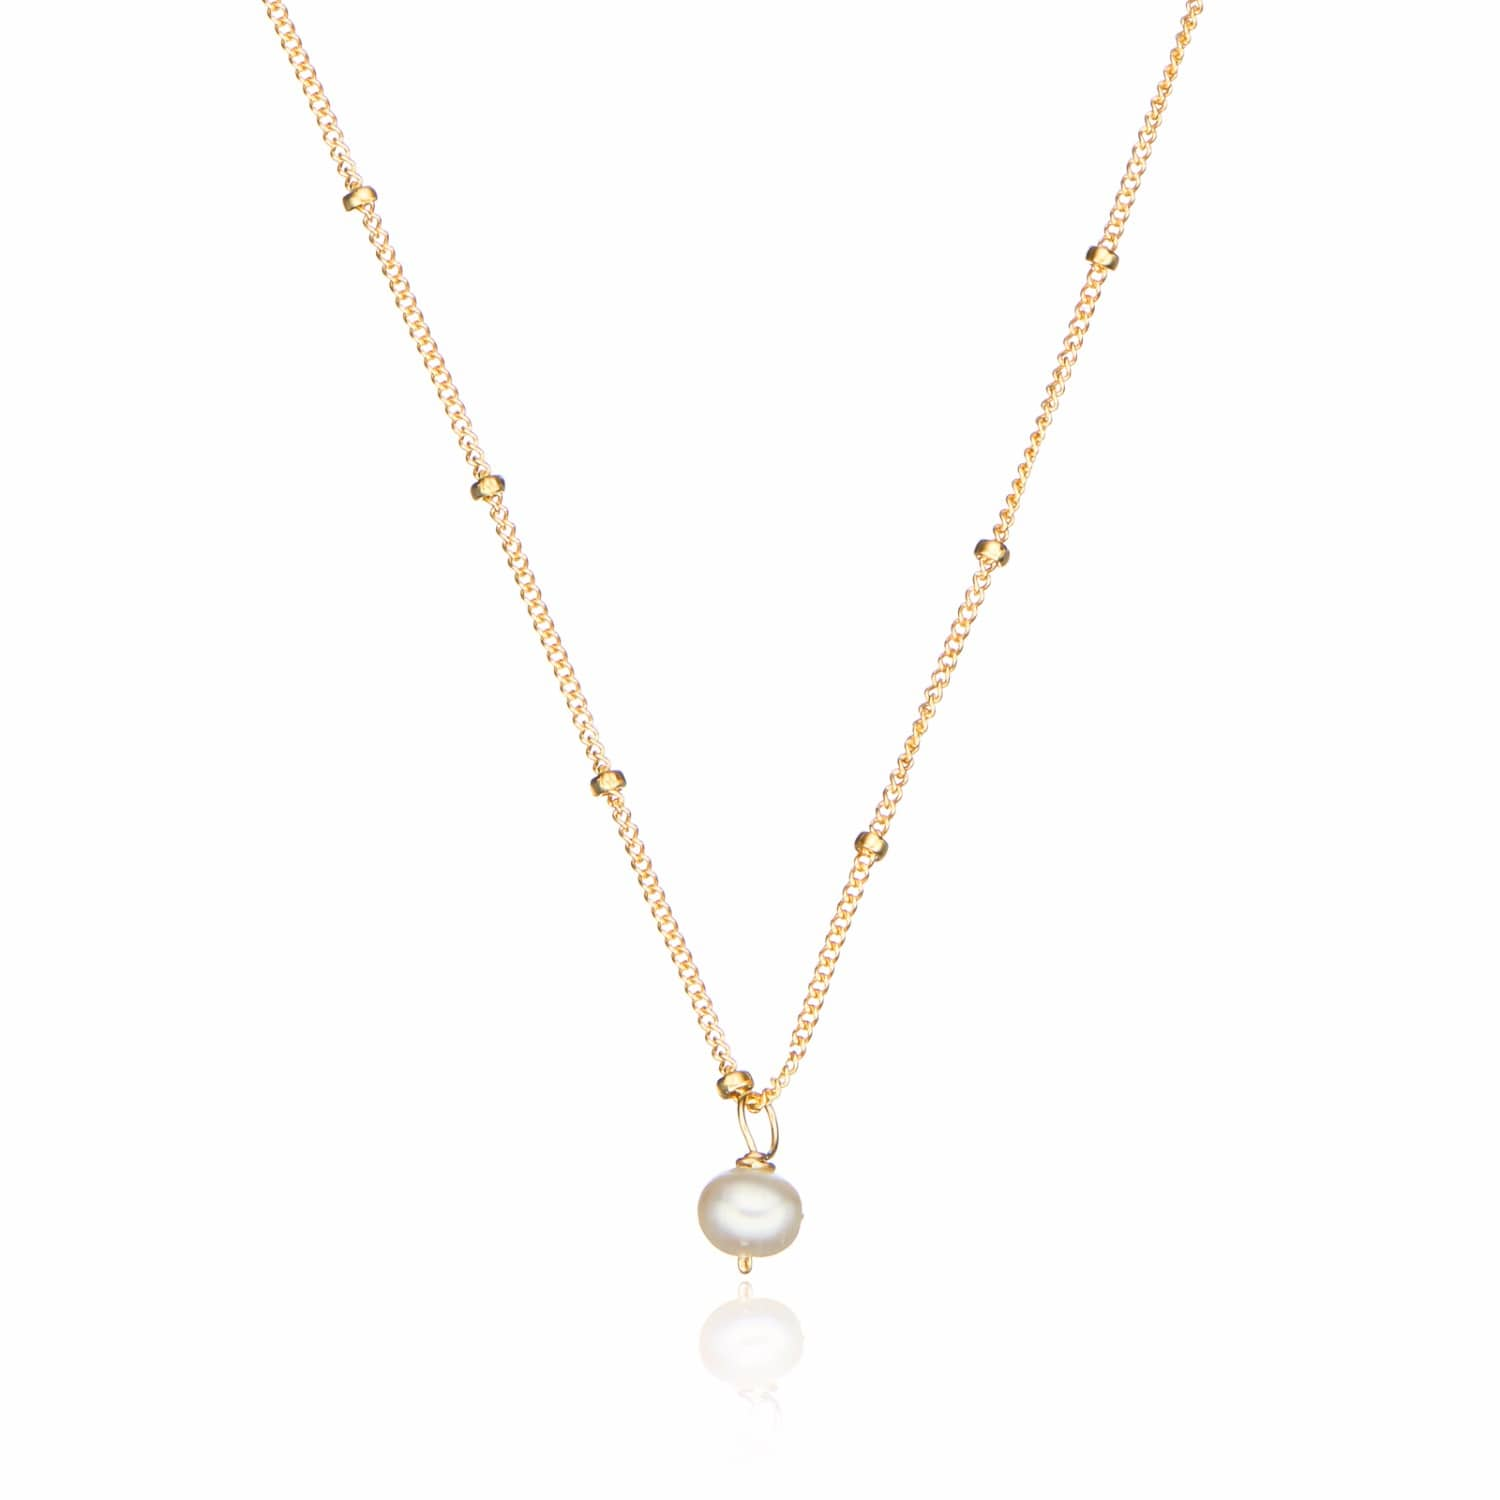 biba shop floating single necklaces home pearl rose jewellery necklace